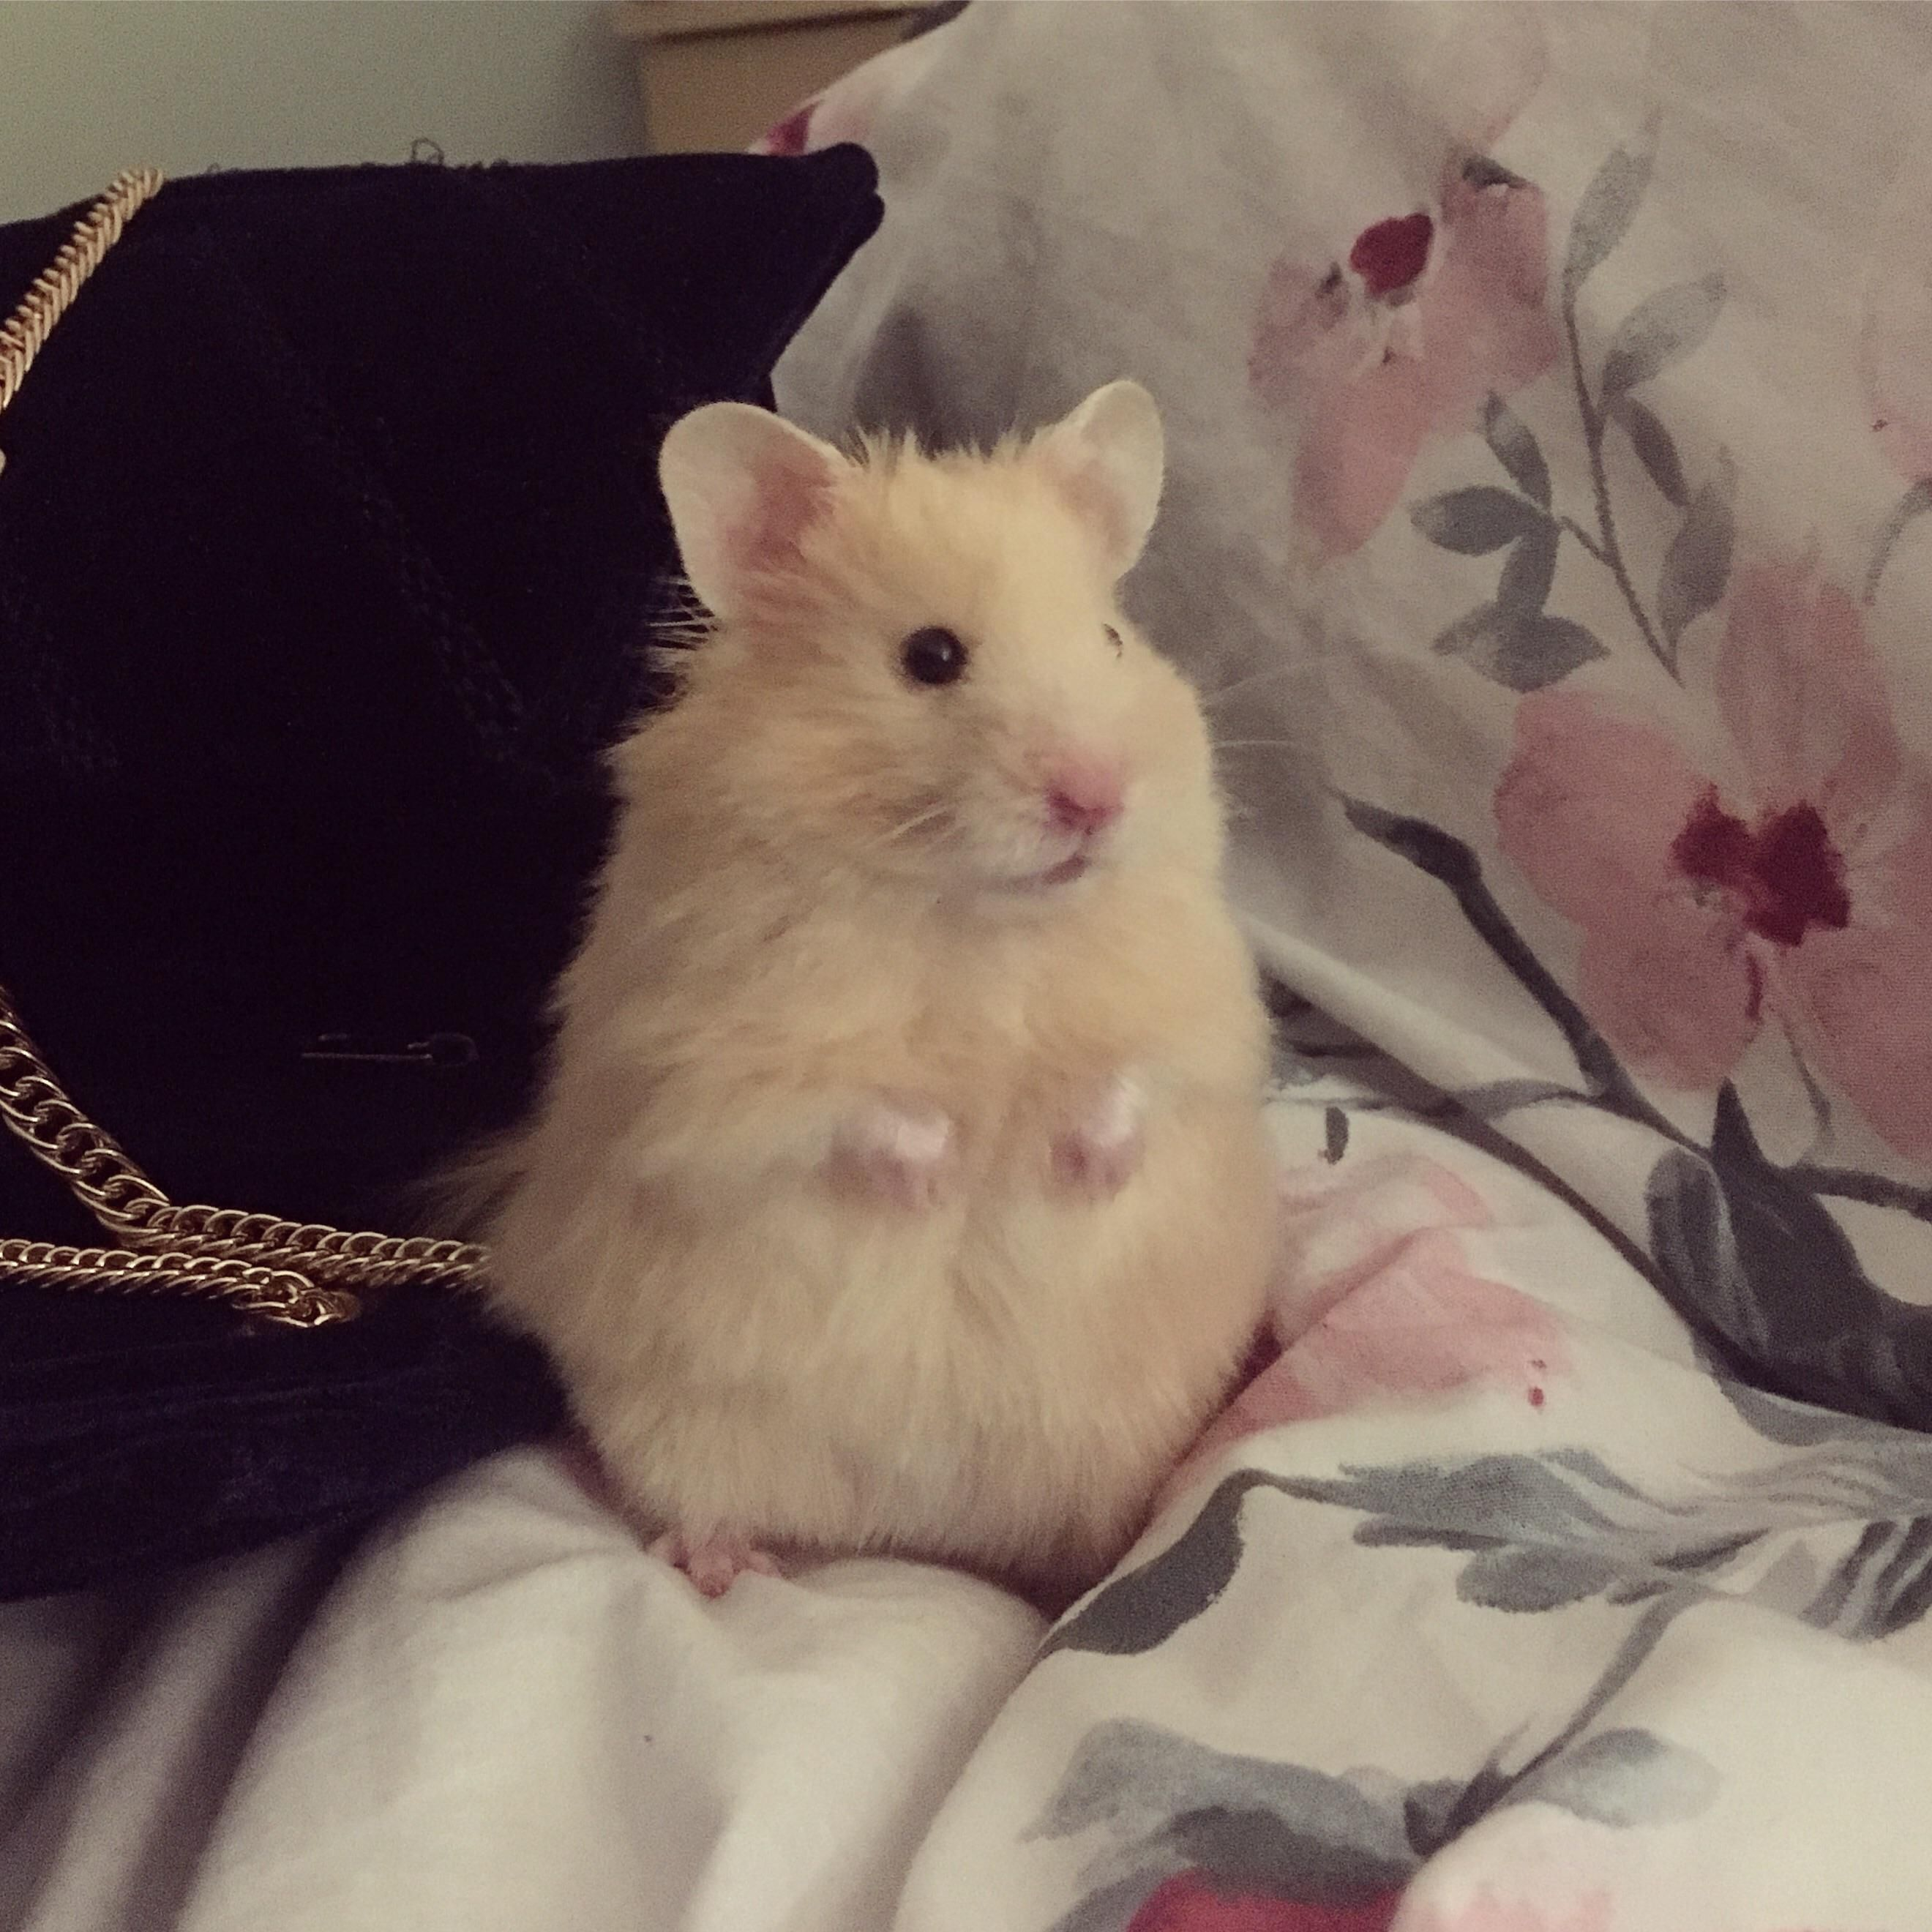 Bean Senses That There Are Peanuts Nearby Aww Cutehamsters Hamster Hamstersofpinterest Boopthesnoot Cuddle Cute Hamsters Cute Baby Animals Funny Hamsters